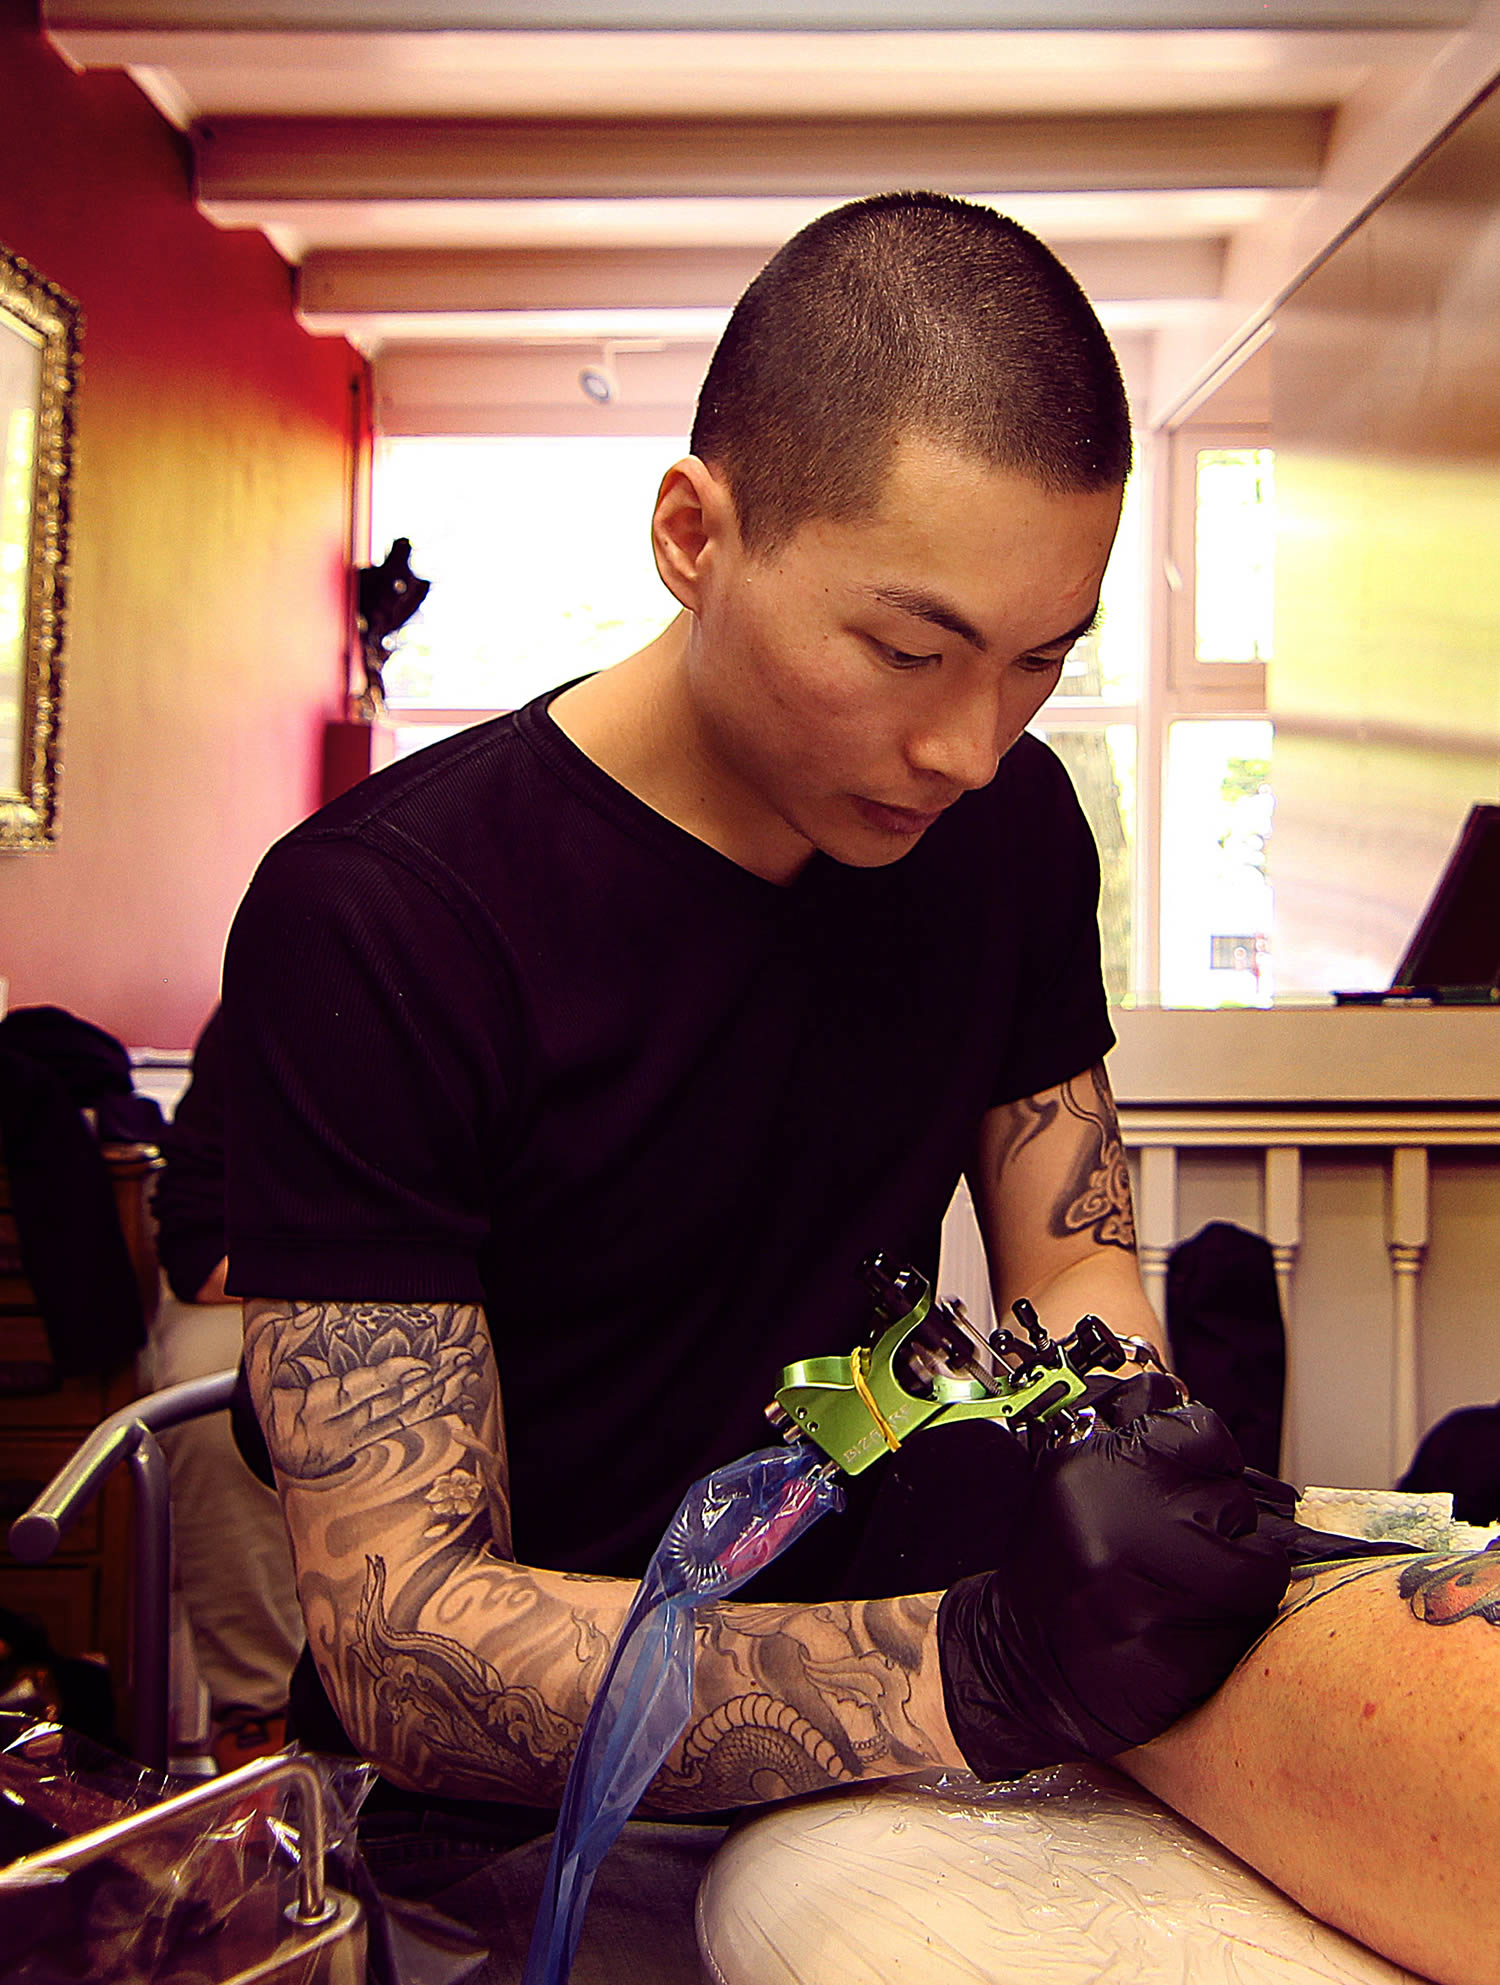 the artist jay freestyle tattooing a client